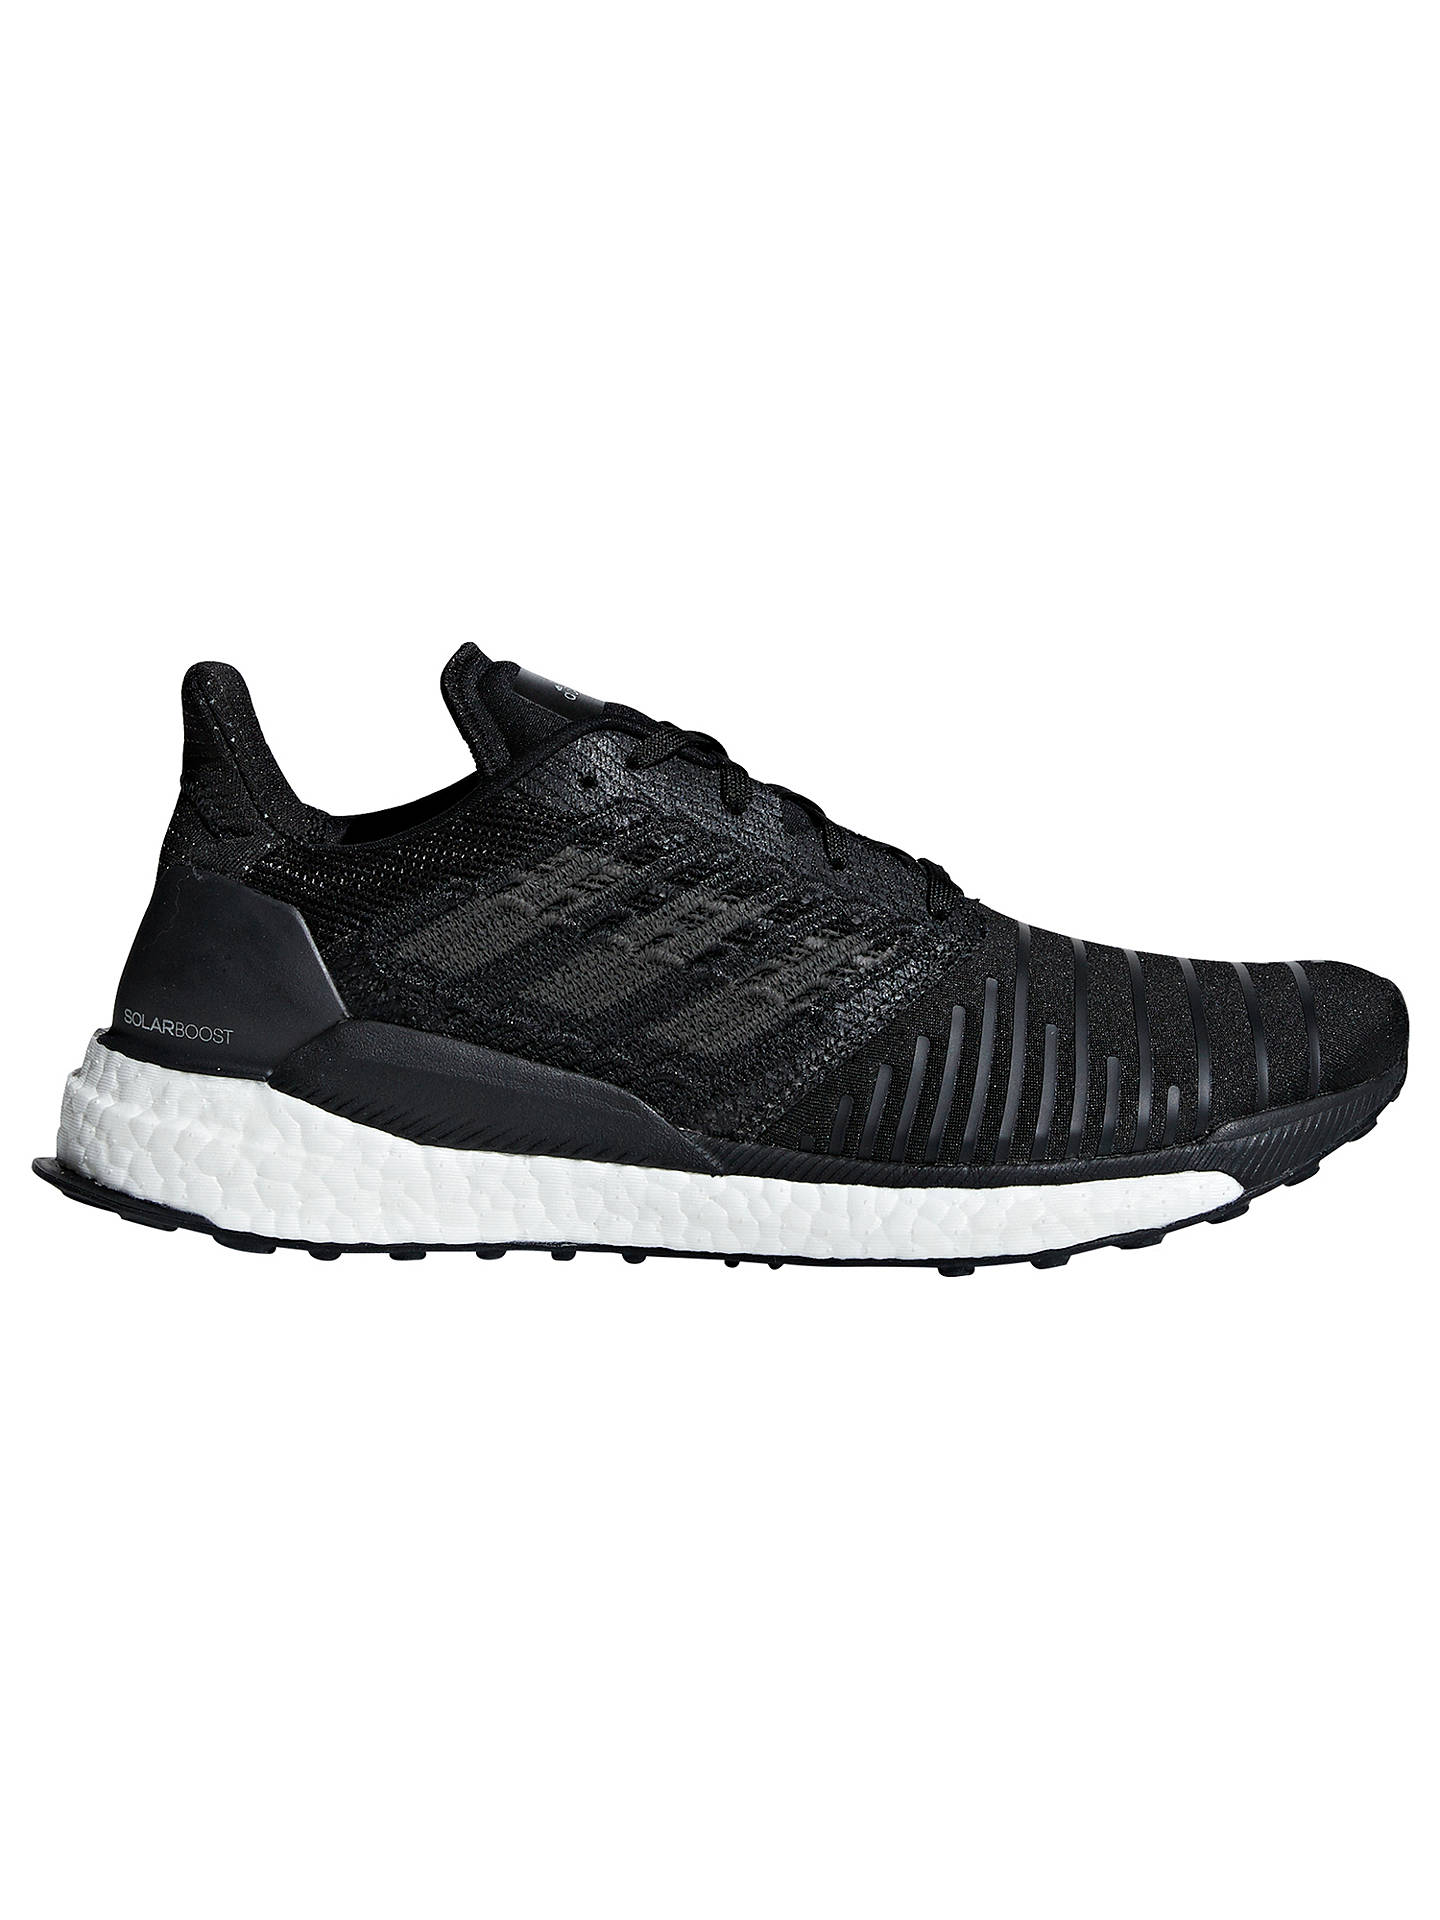 482d6d600bf11 Buy adidas Solar Boost Men s Running Shoes